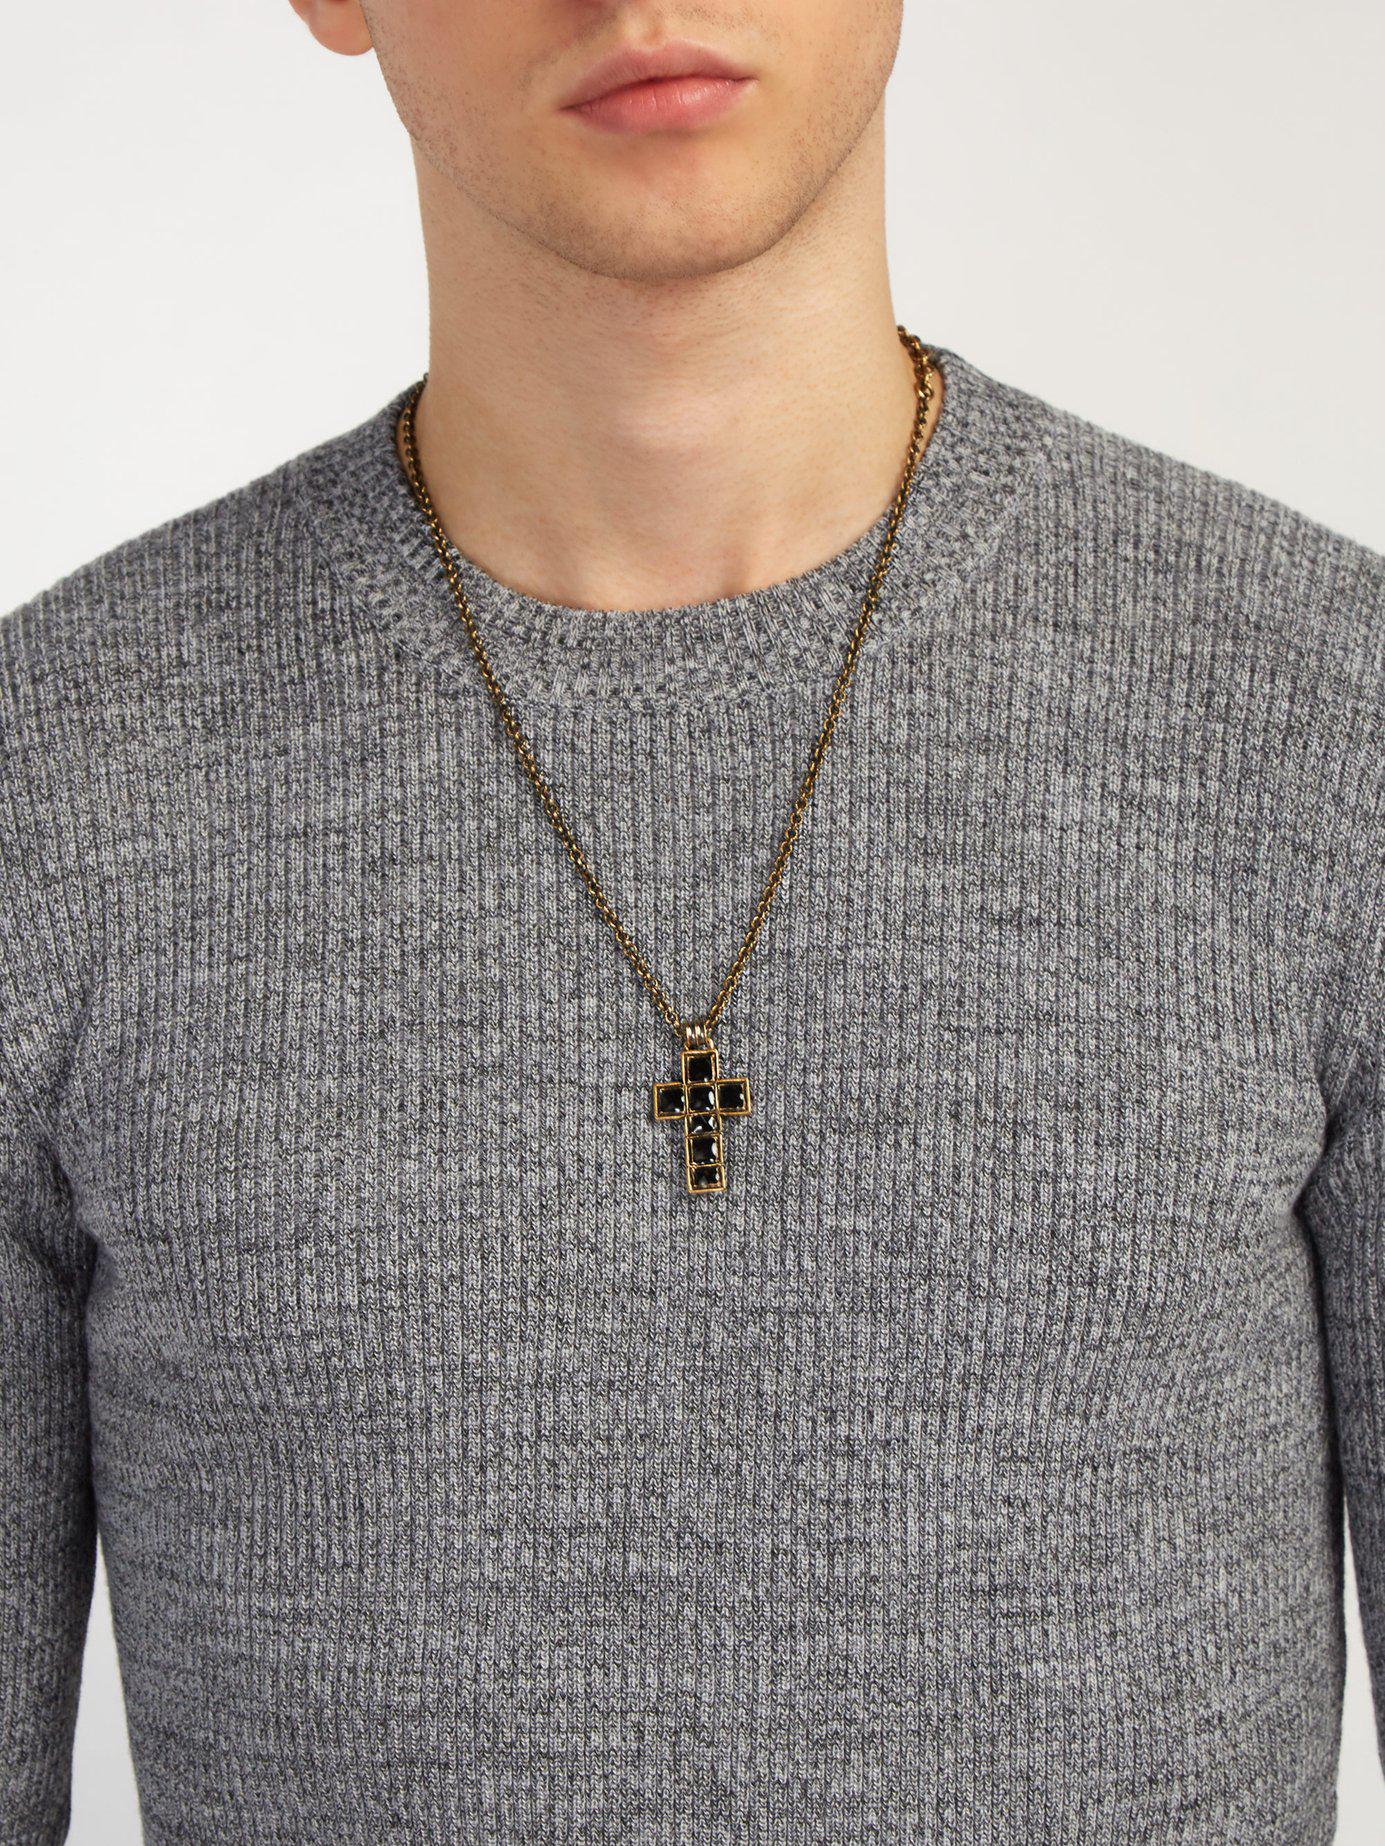 053fee205 Gucci - Black Cross Pendant Necklace for Men - Lyst. View fullscreen